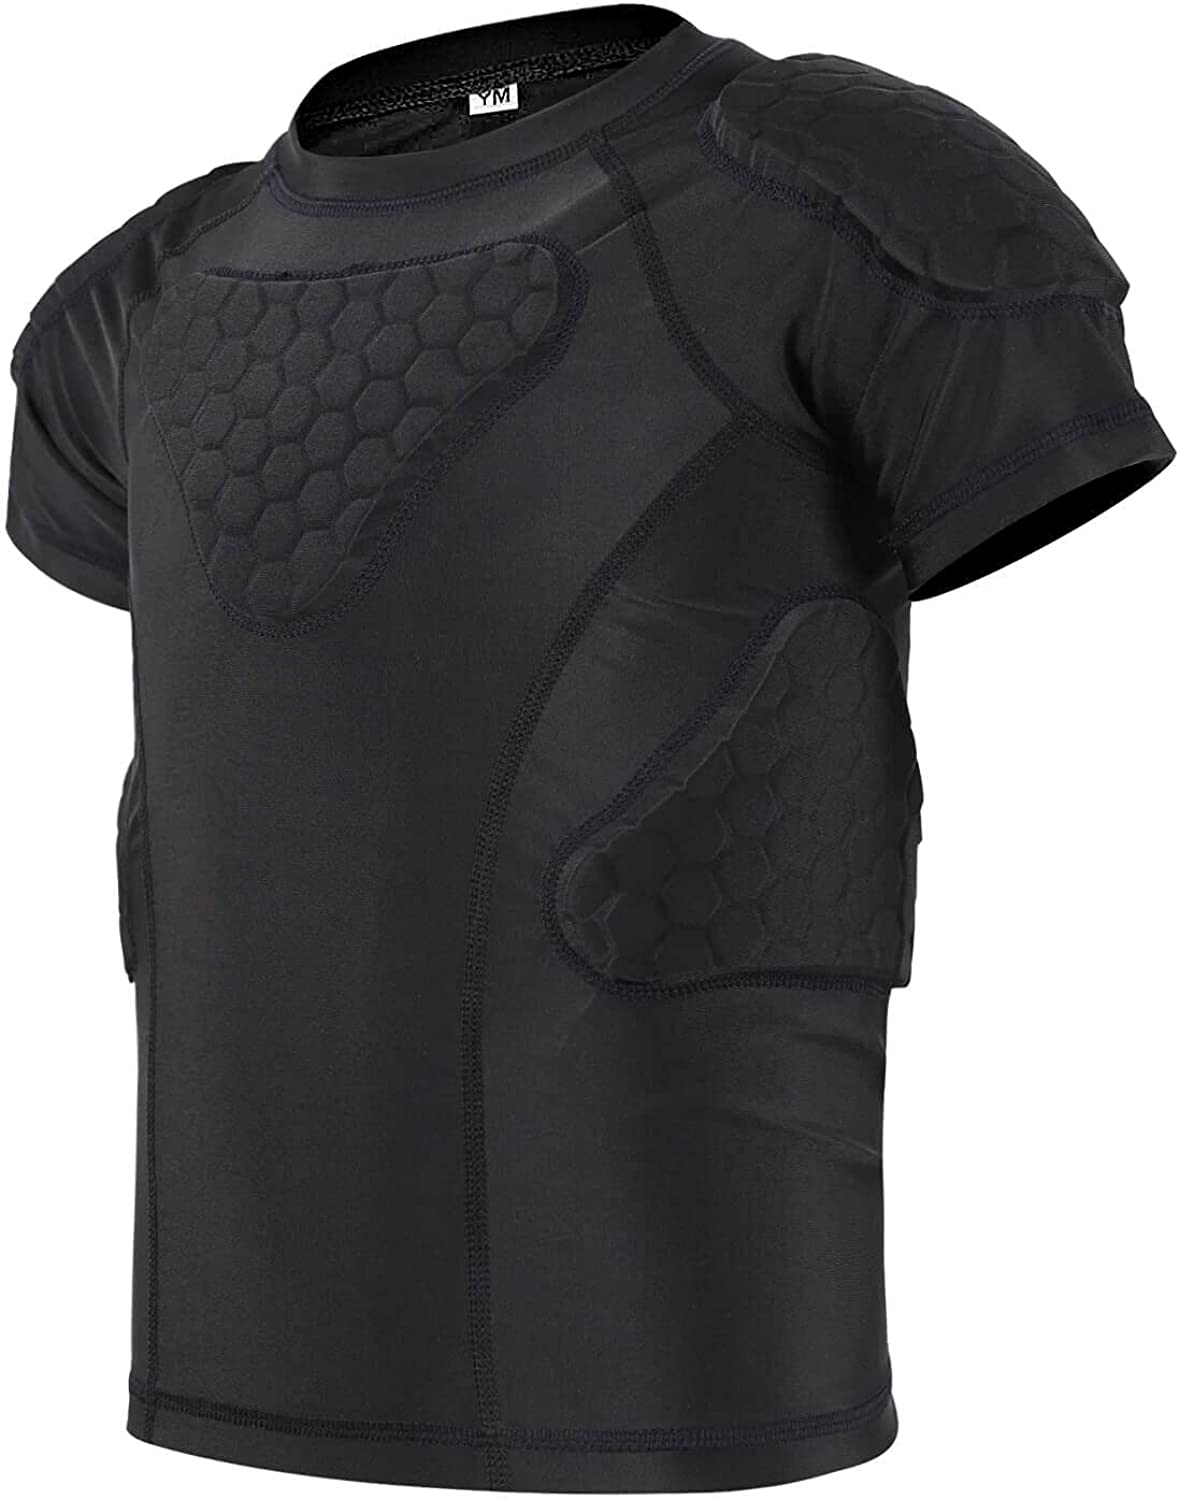 TUOY Youth Padded Compression Japan's largest assortment Chest Shirt Rib Prote Albuquerque Mall